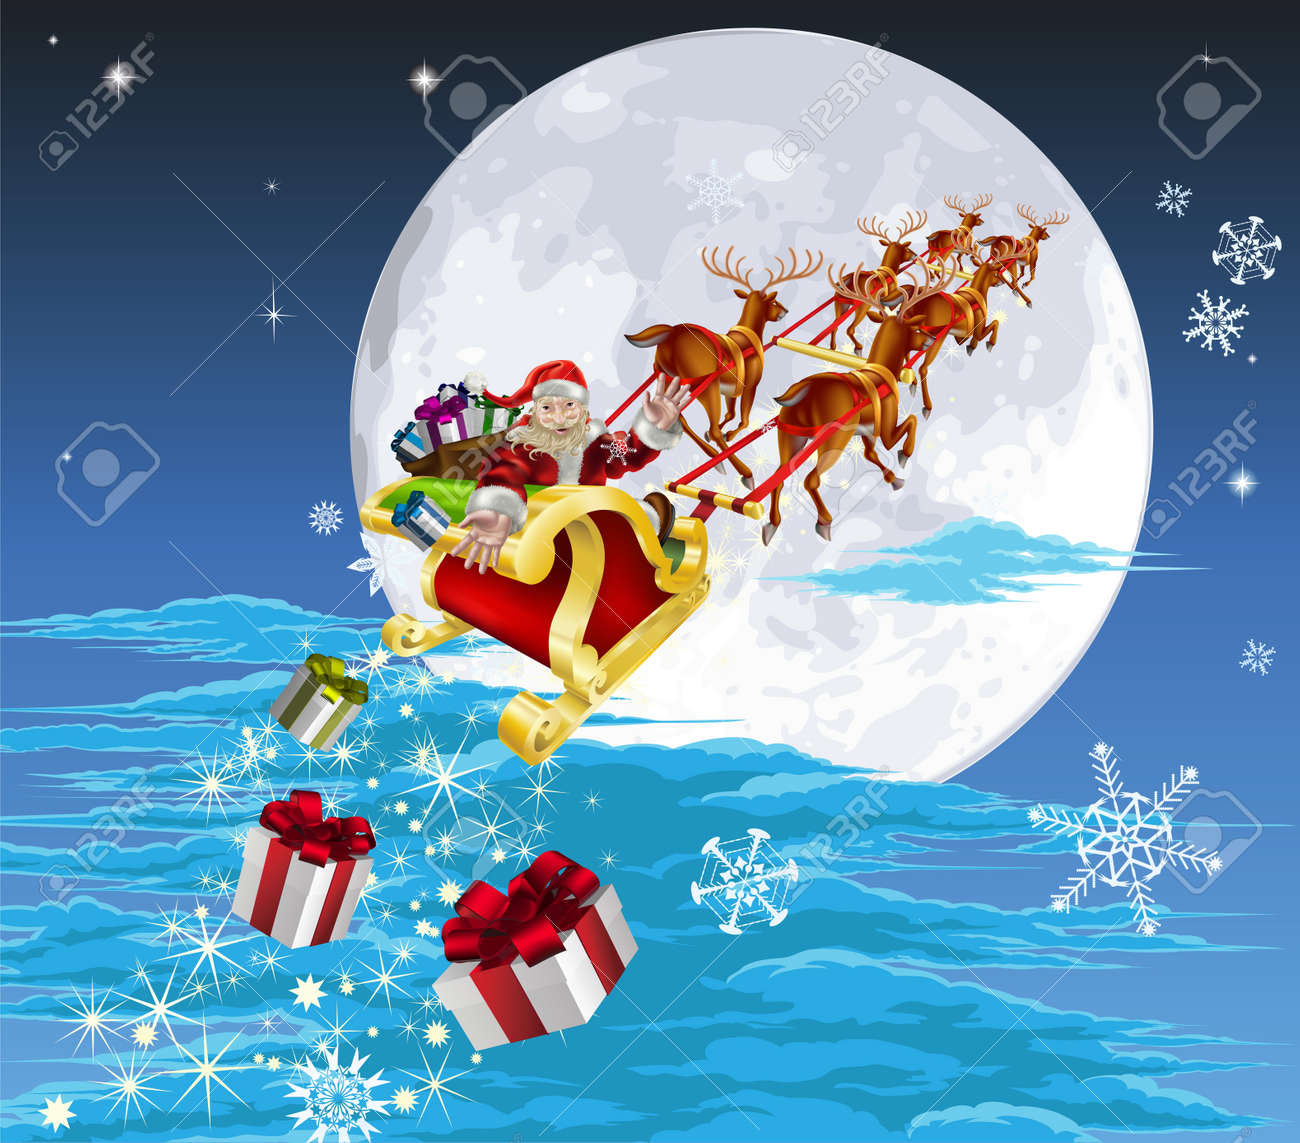 Santa in his Christmas sled or sleigh, delivering his Christmas gifts to everyone Stock Vector - 10502957